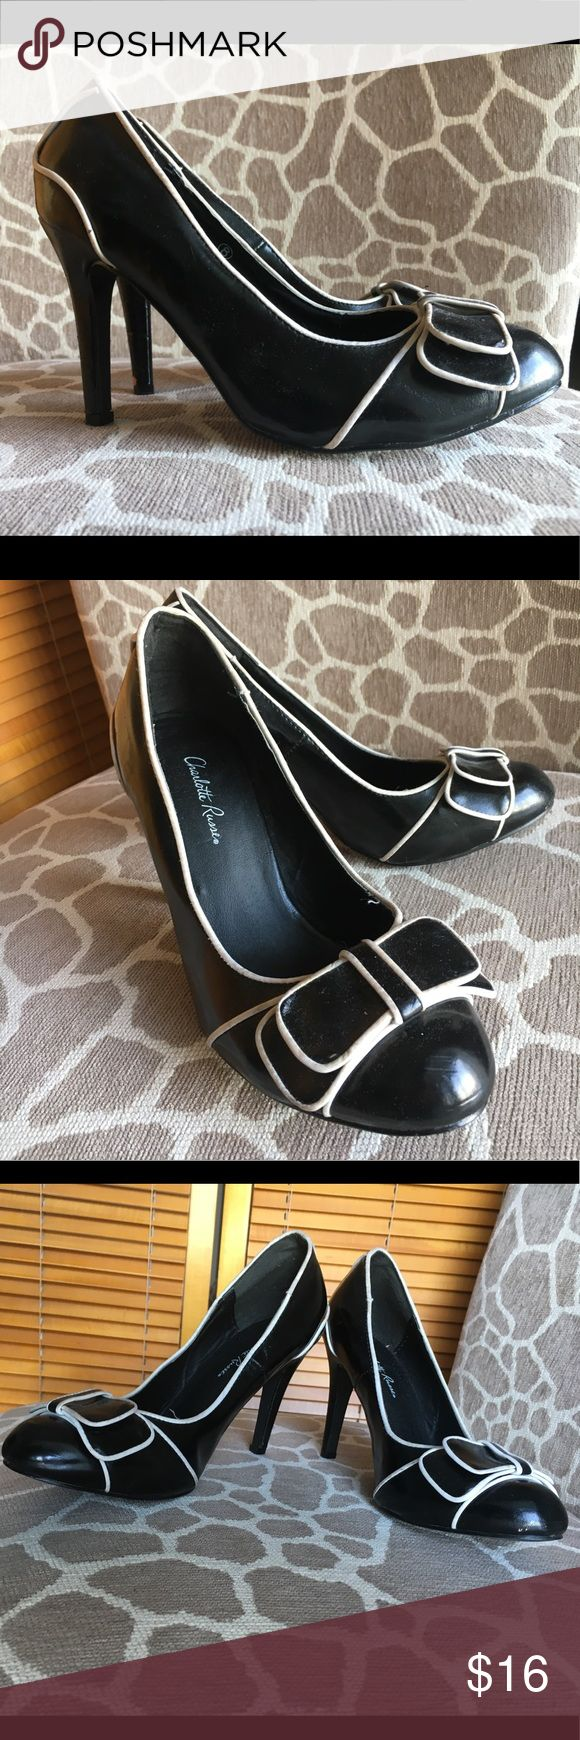 Cute black 50's style Charlotte Russe heels Cute, black, 50's style Charlotte Russe heels with accent on the toe. Closed toe heels. A little worn, but in good quality! Super cute. Wear to your next 50's dress up, dance party or sock hop! Charlotte Russe Shoes Heels